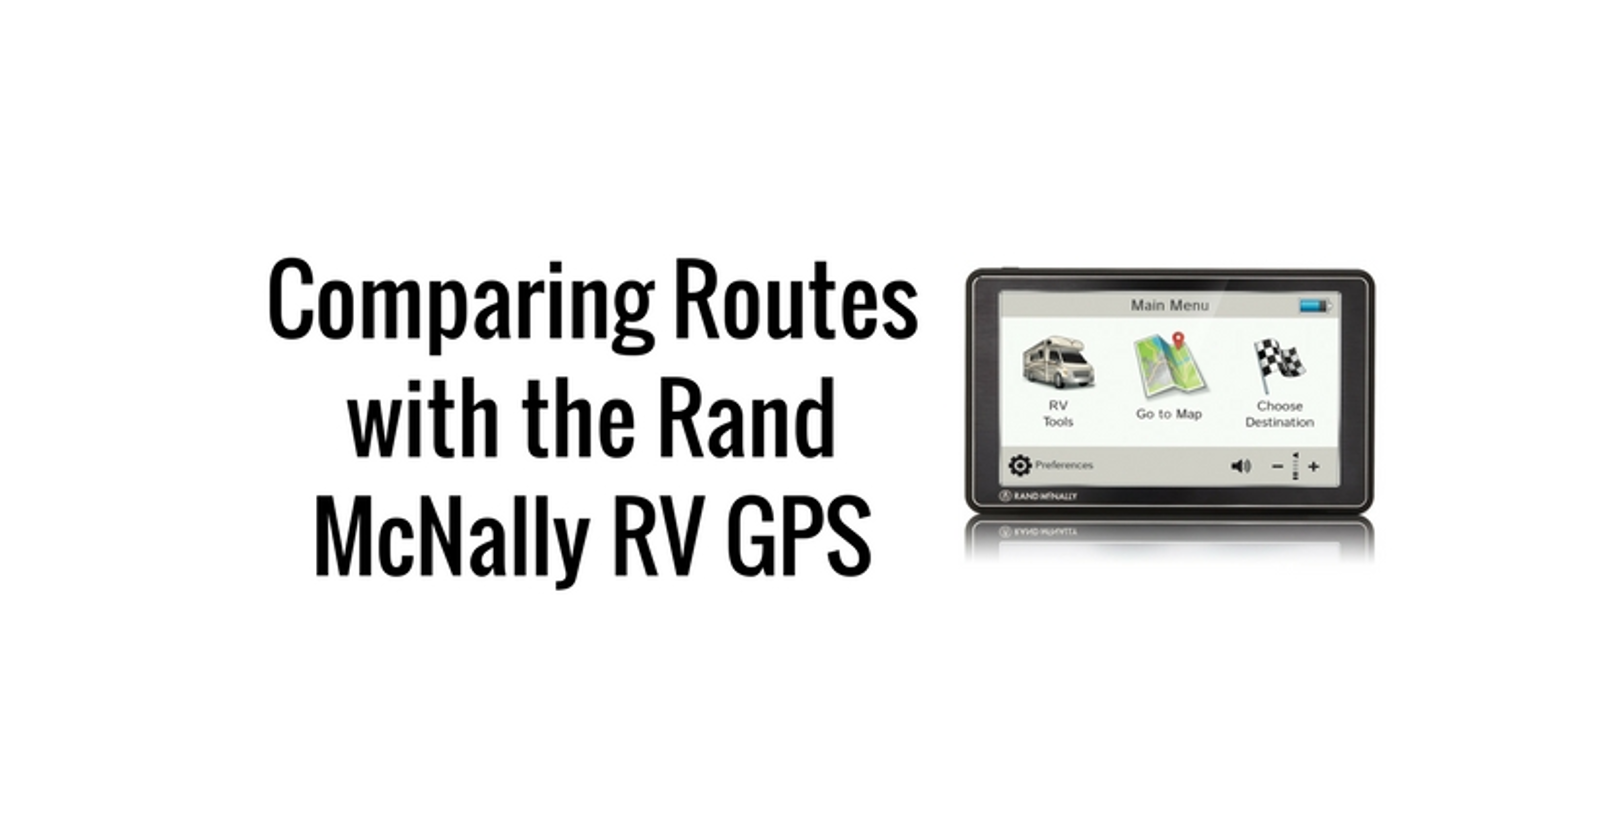 Comparing Routes with the Rand McNally RV GPS